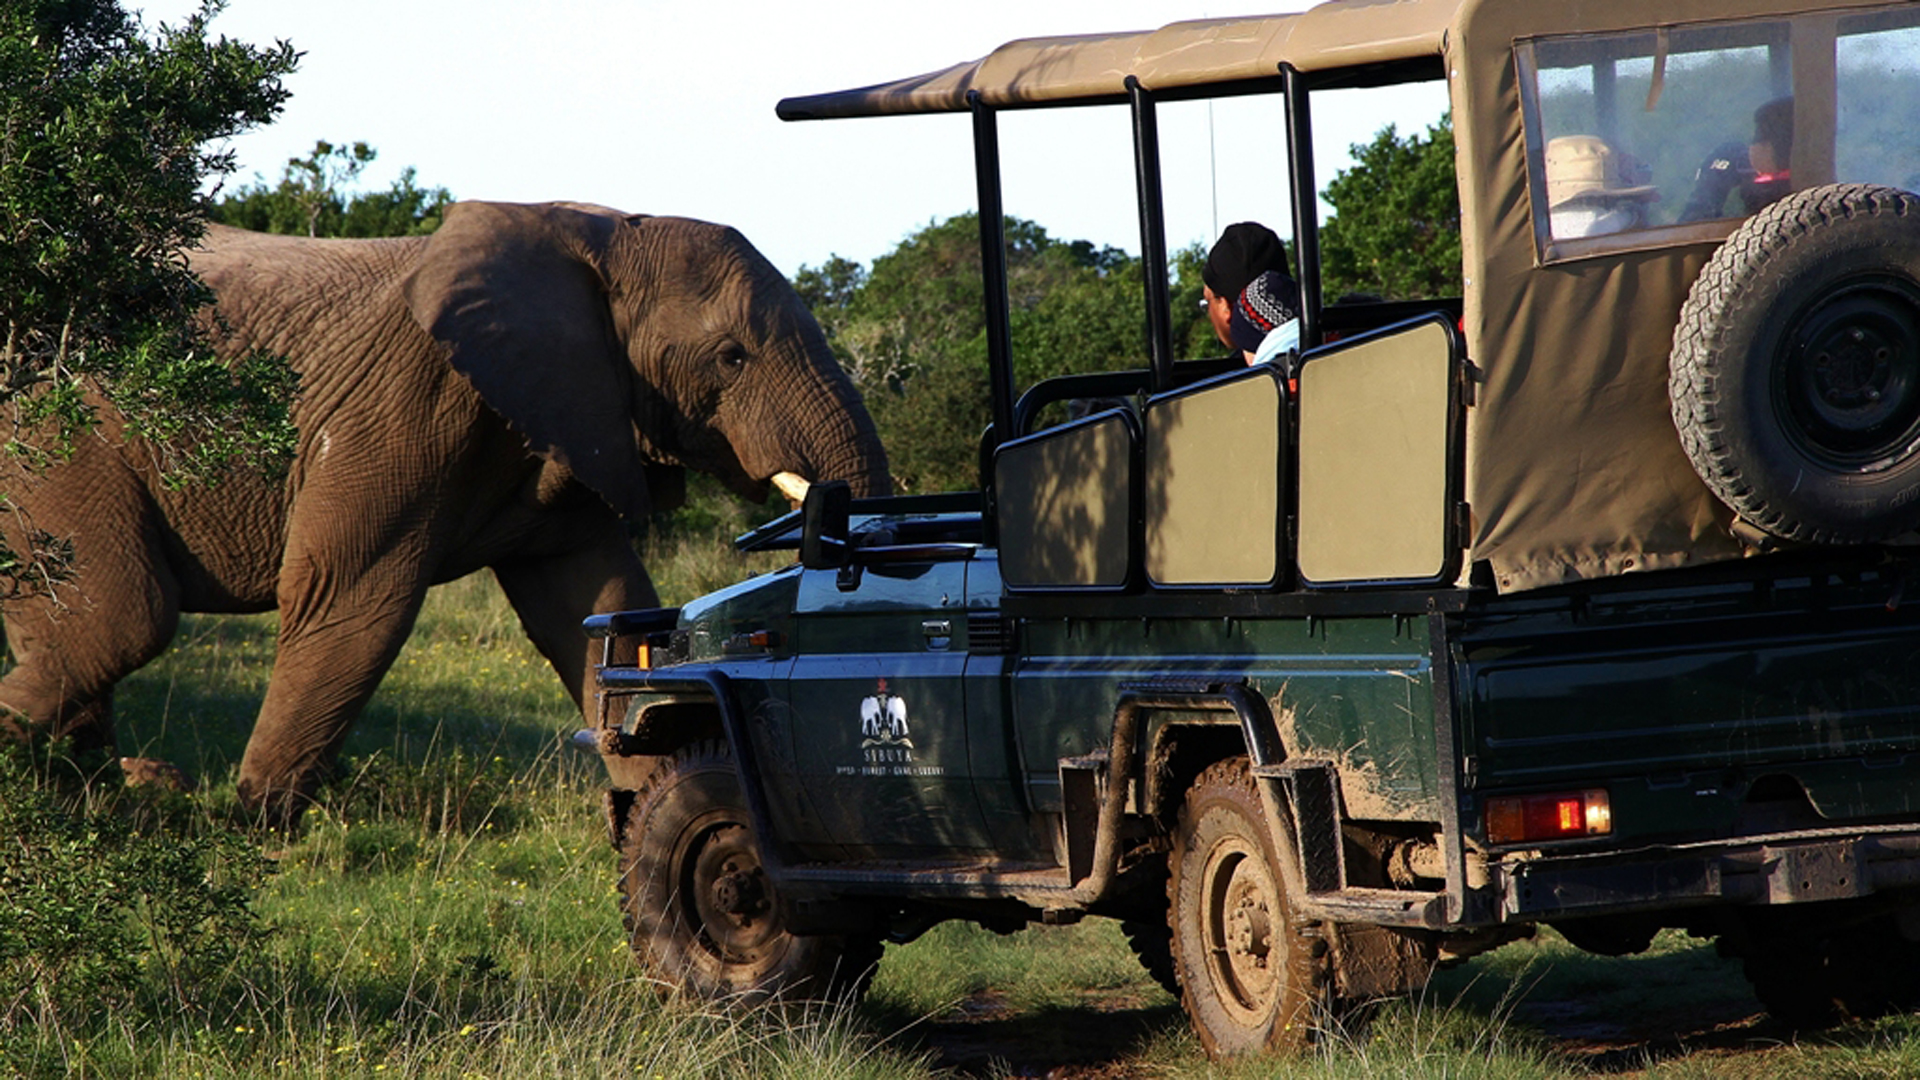 Elephant sighted on a game drive in Sibuya Game Reserve, South Africa